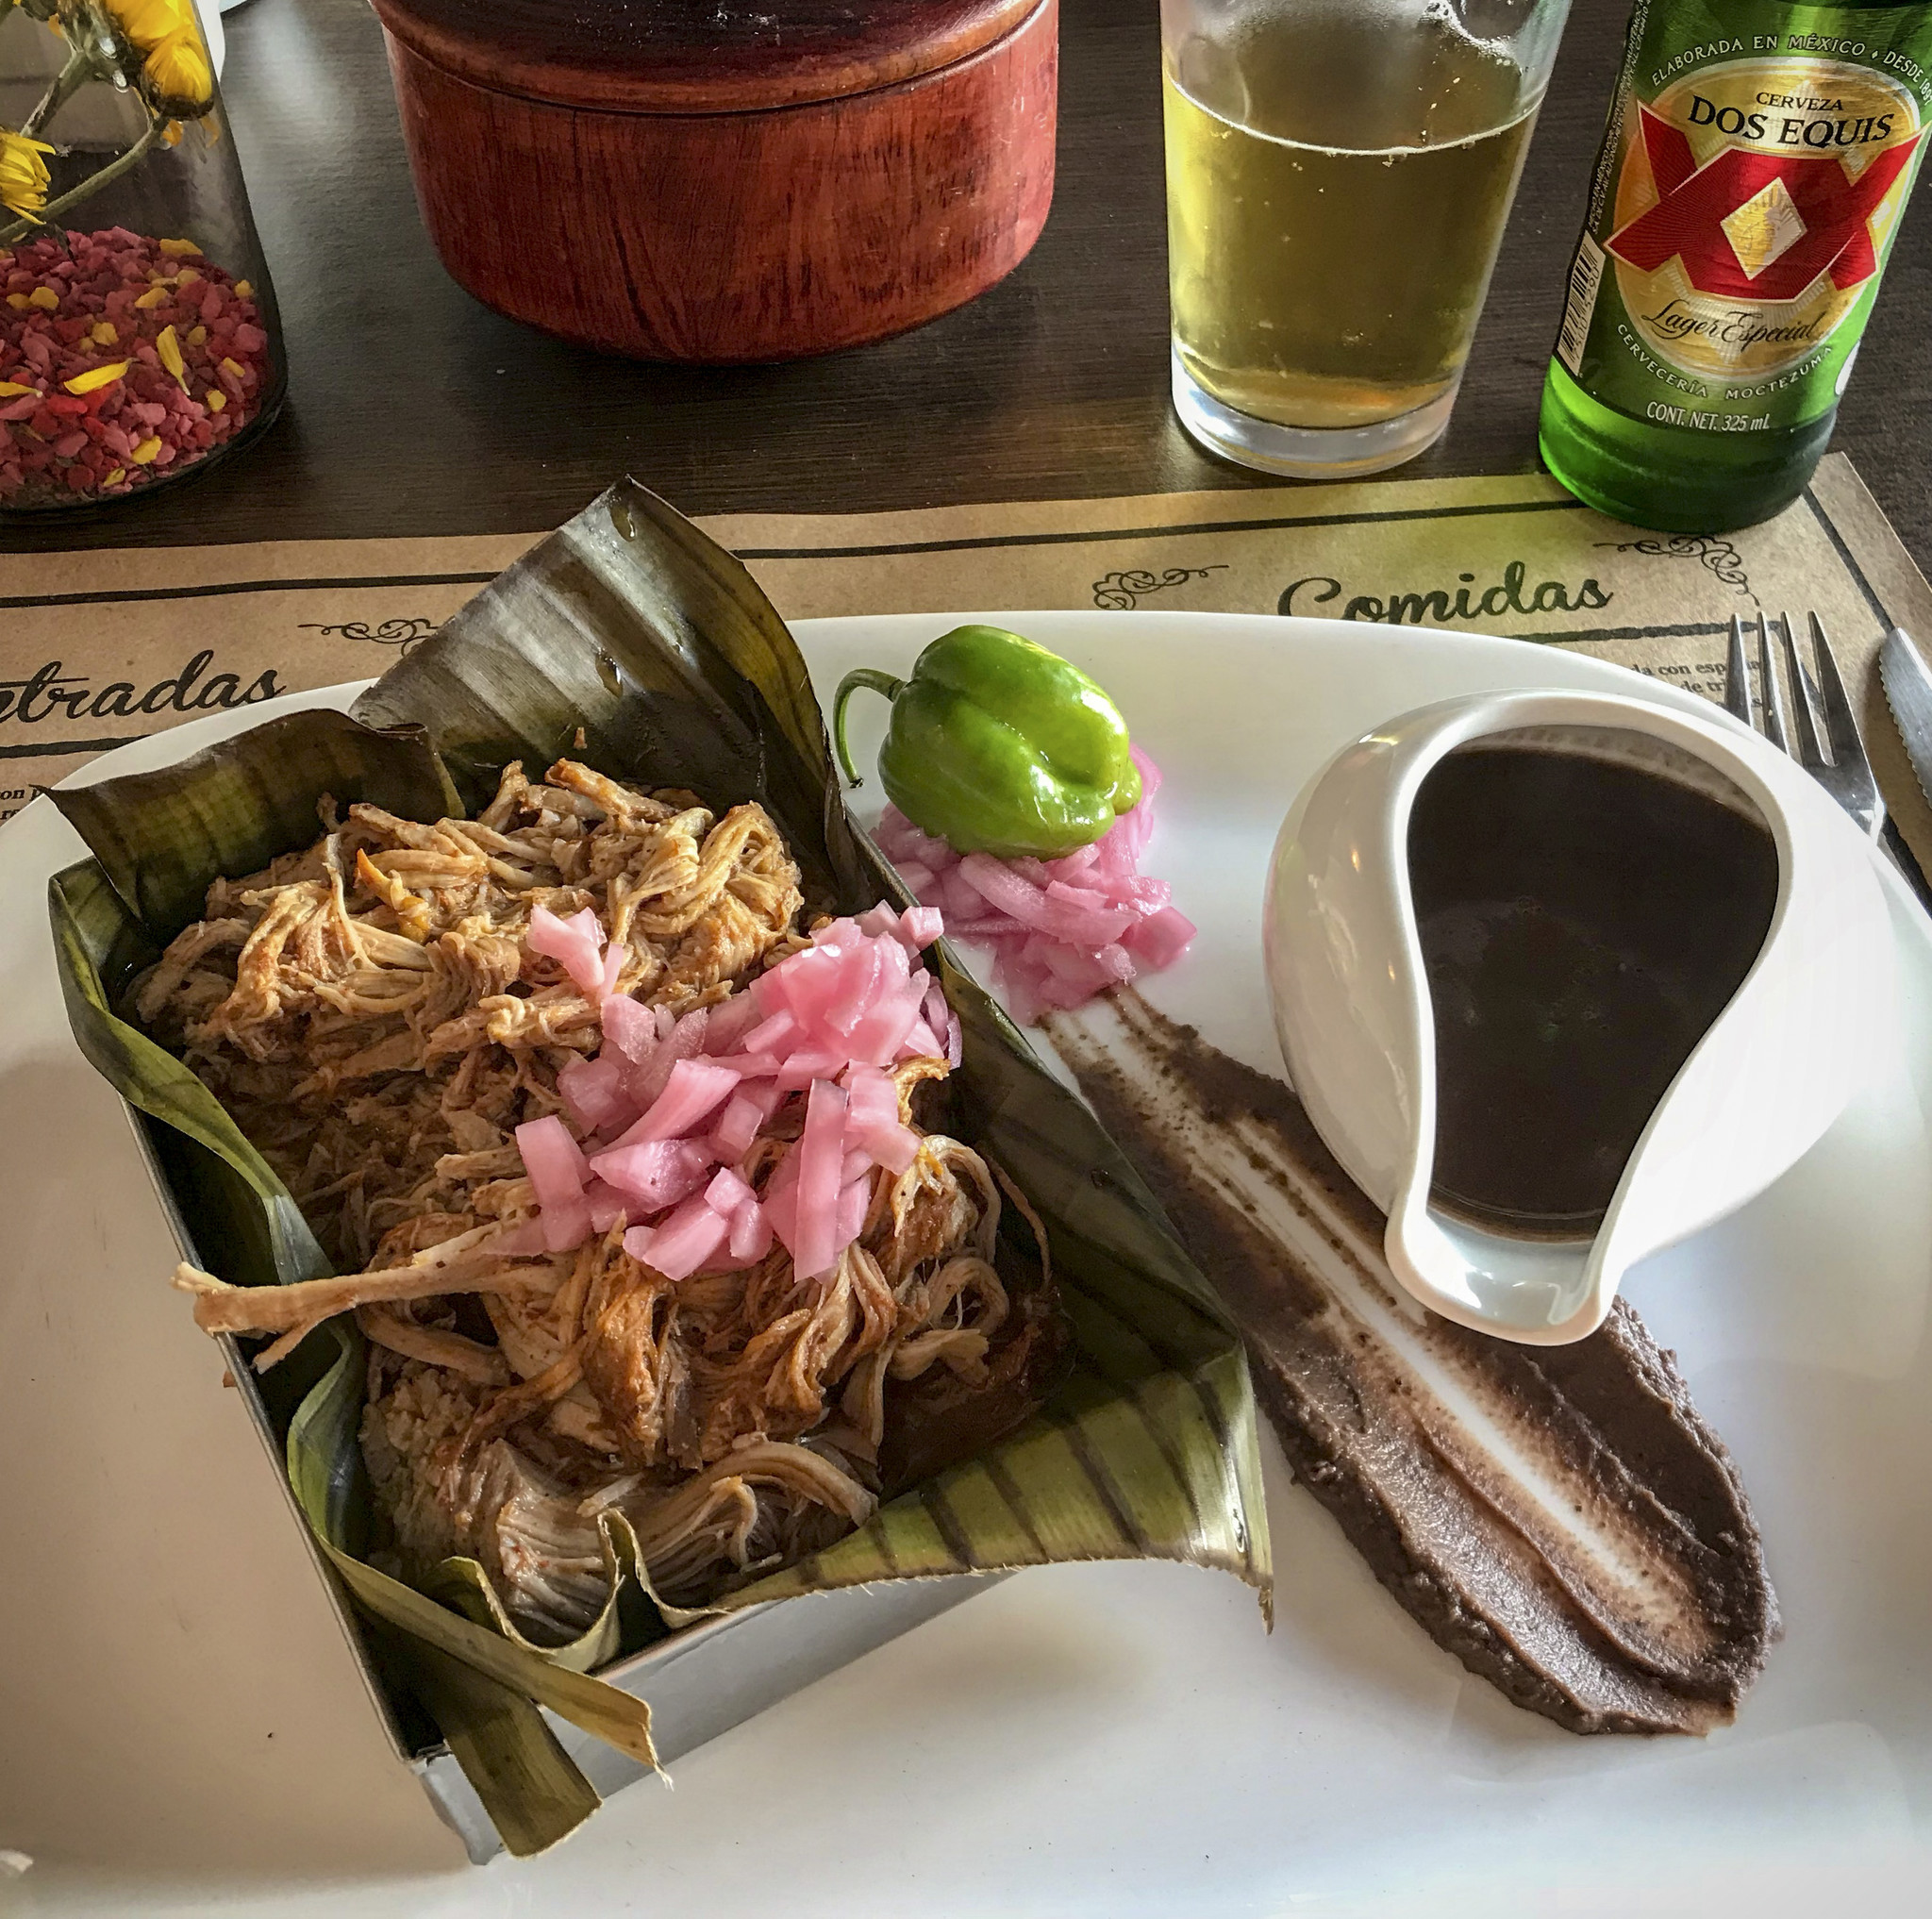 MERIDA, MEXICO - The iconic Yucatecan dish Cochinita pibil – slow-roasted pork – at Manjar Blanco re